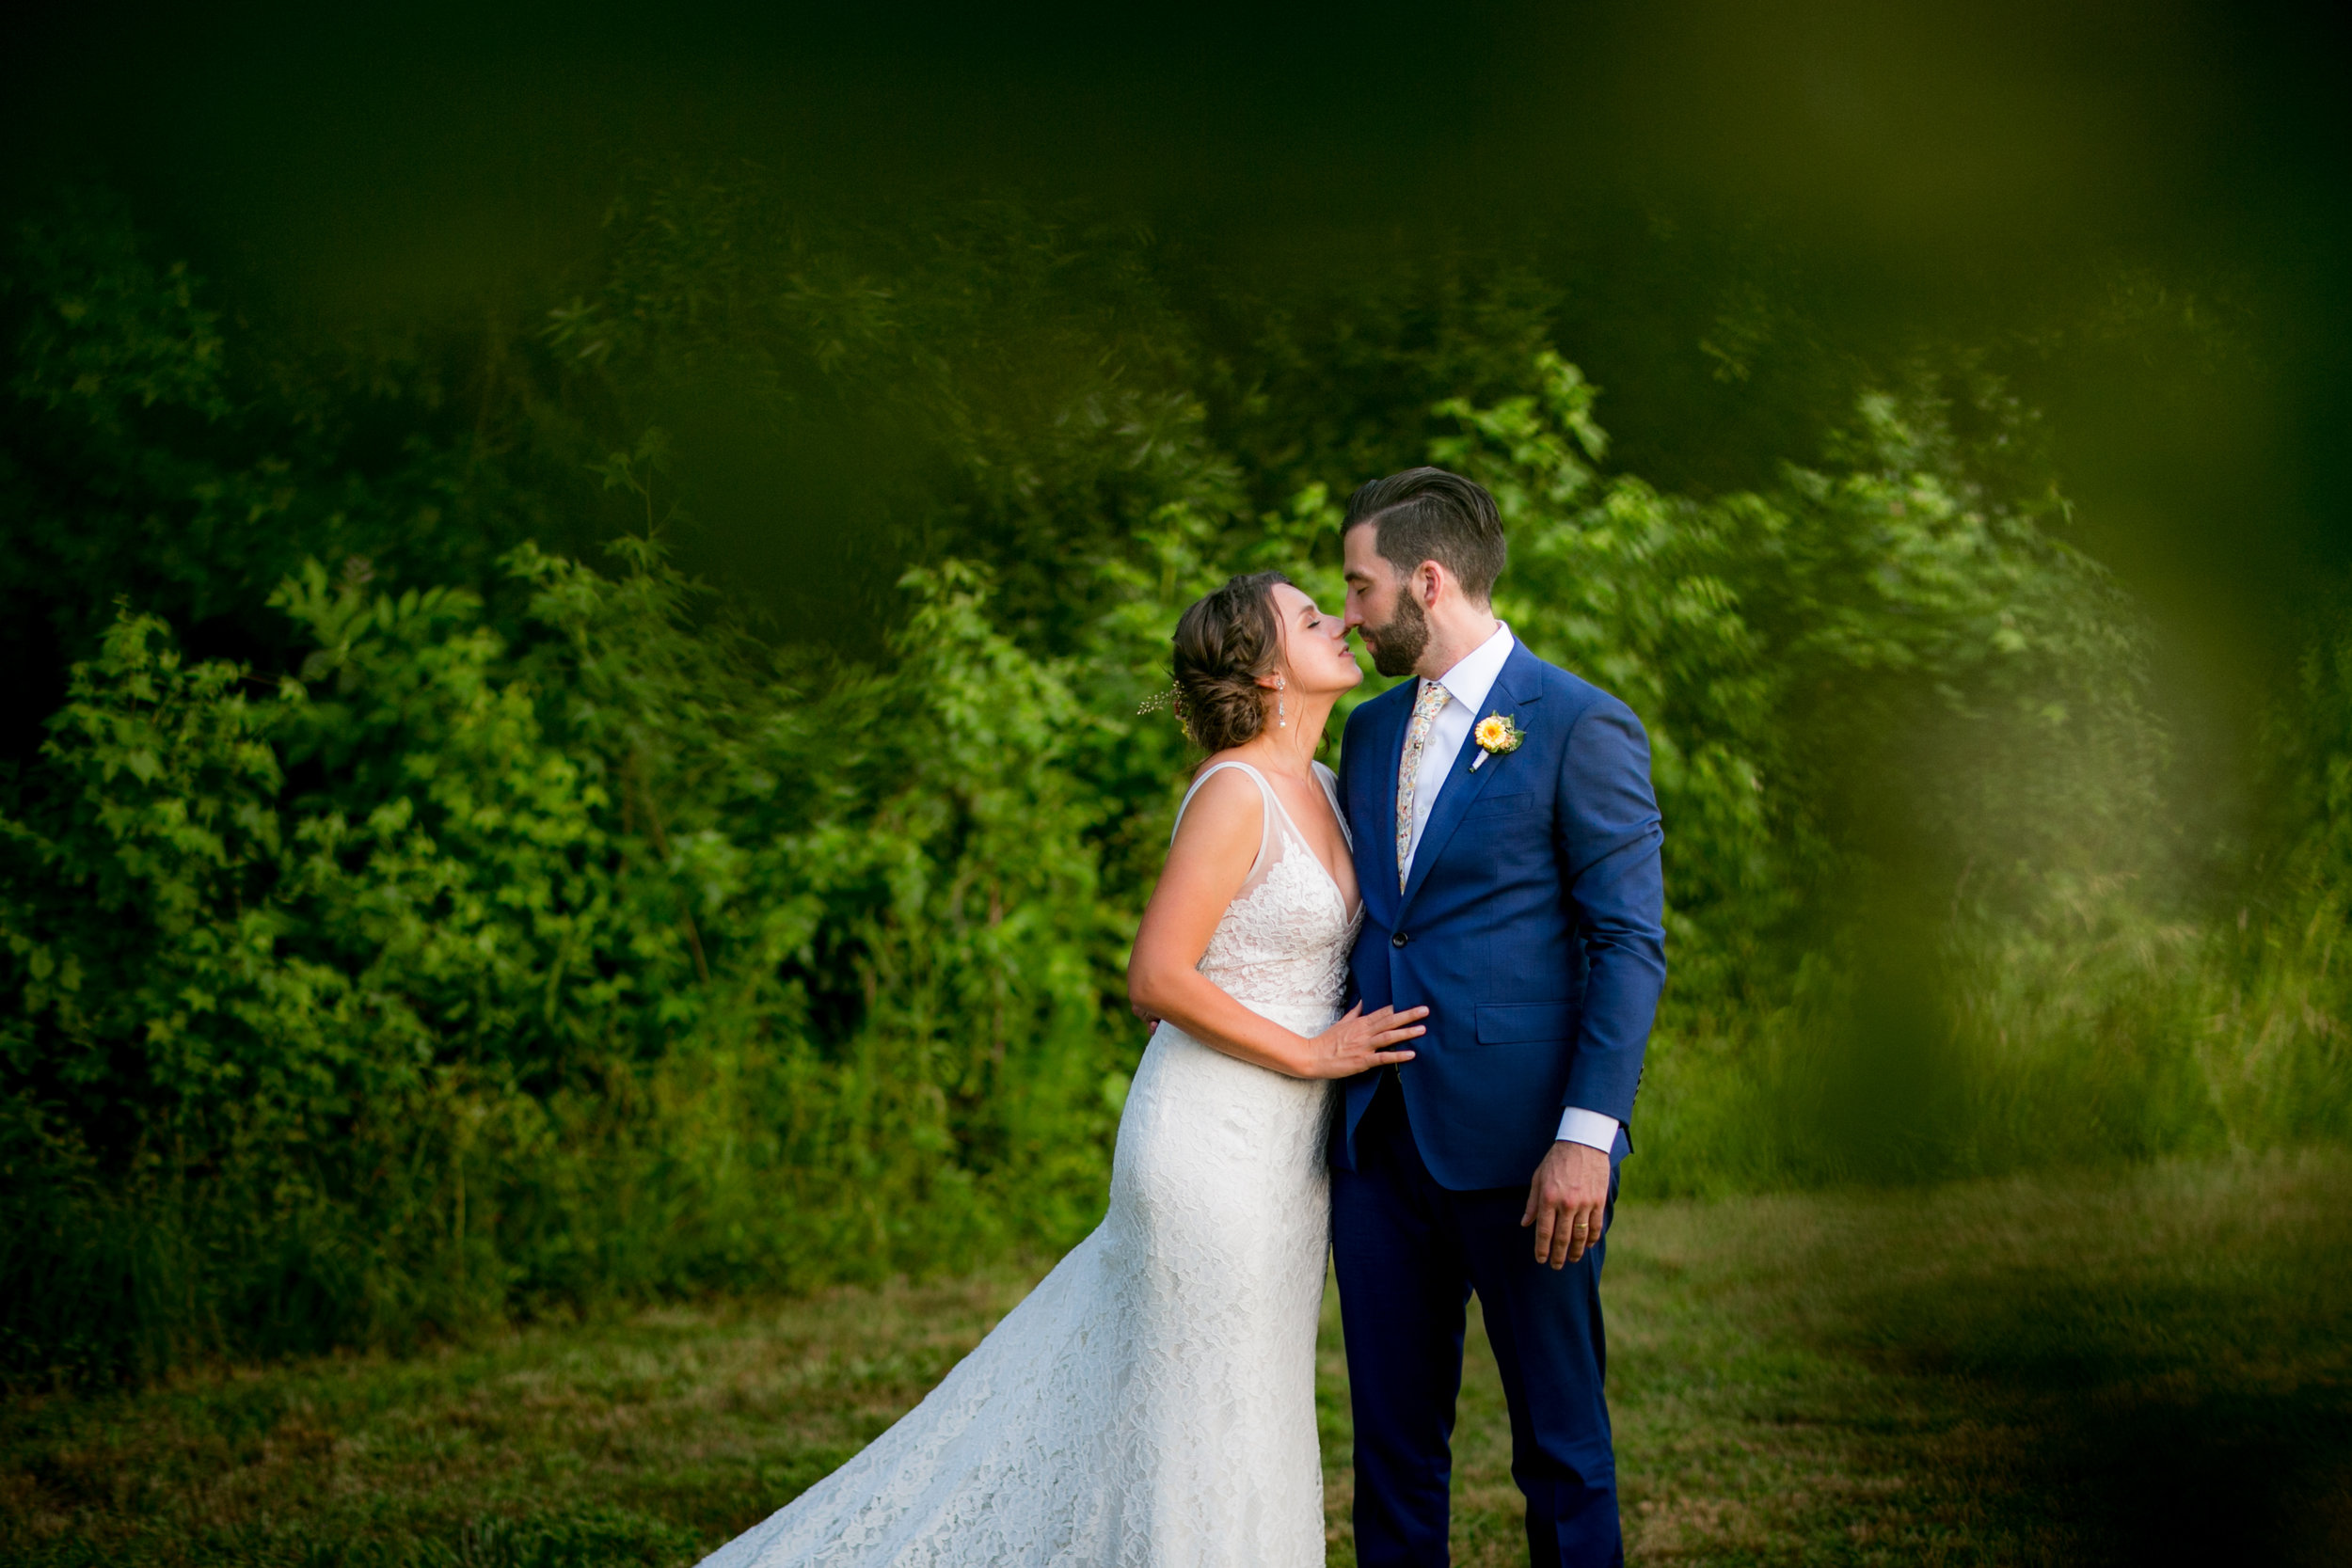 62-2019-Wedding-select-web.jpg